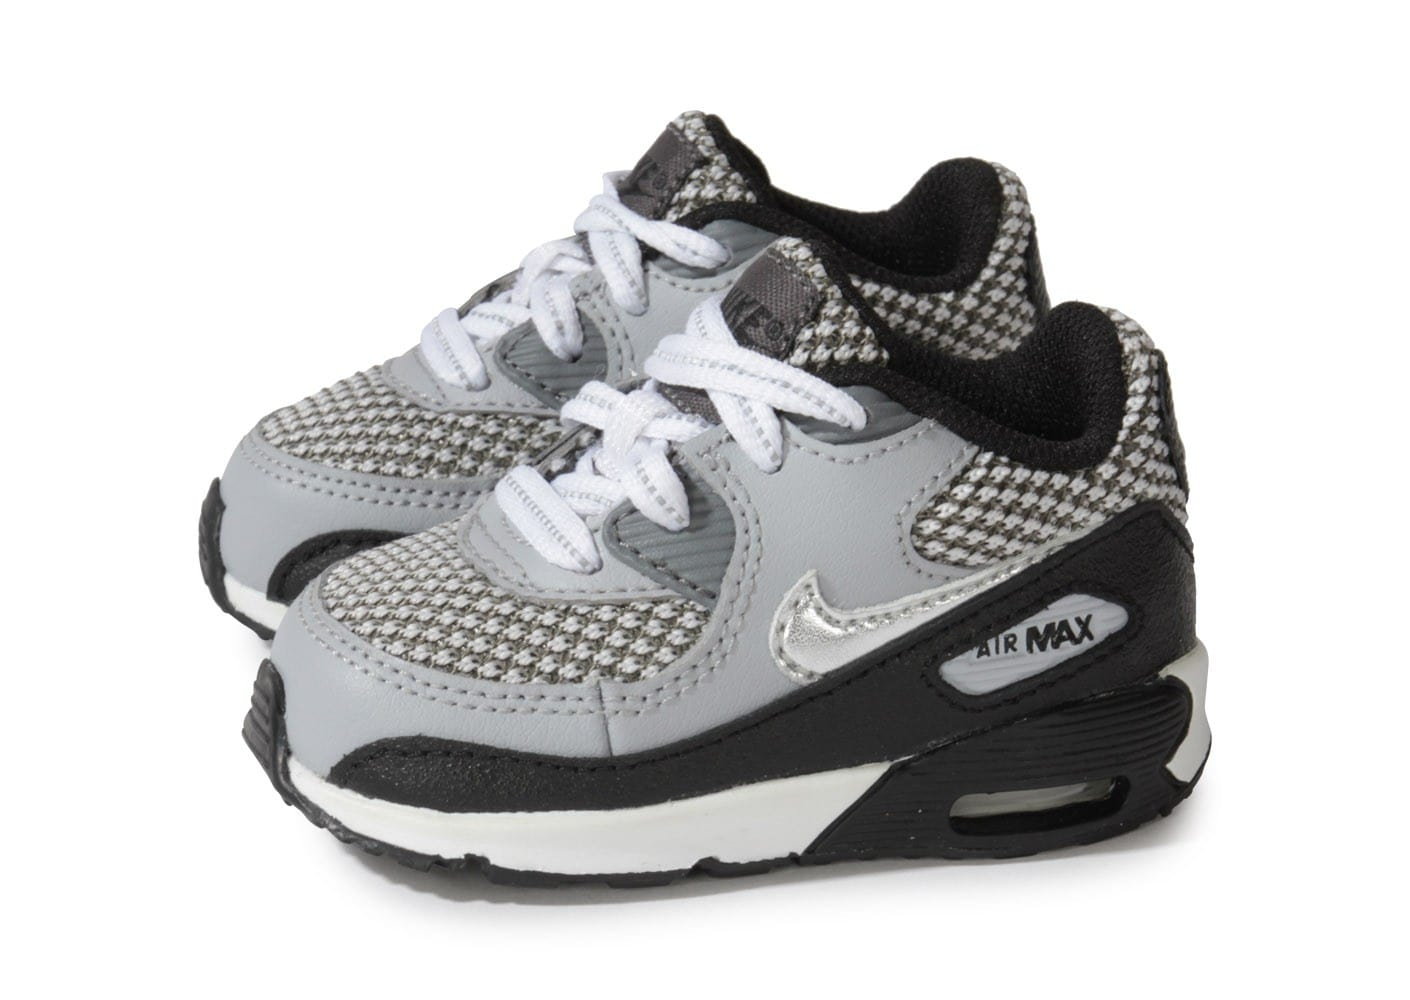 nike air max 90 b b grise chaussures chaussures chausport. Black Bedroom Furniture Sets. Home Design Ideas